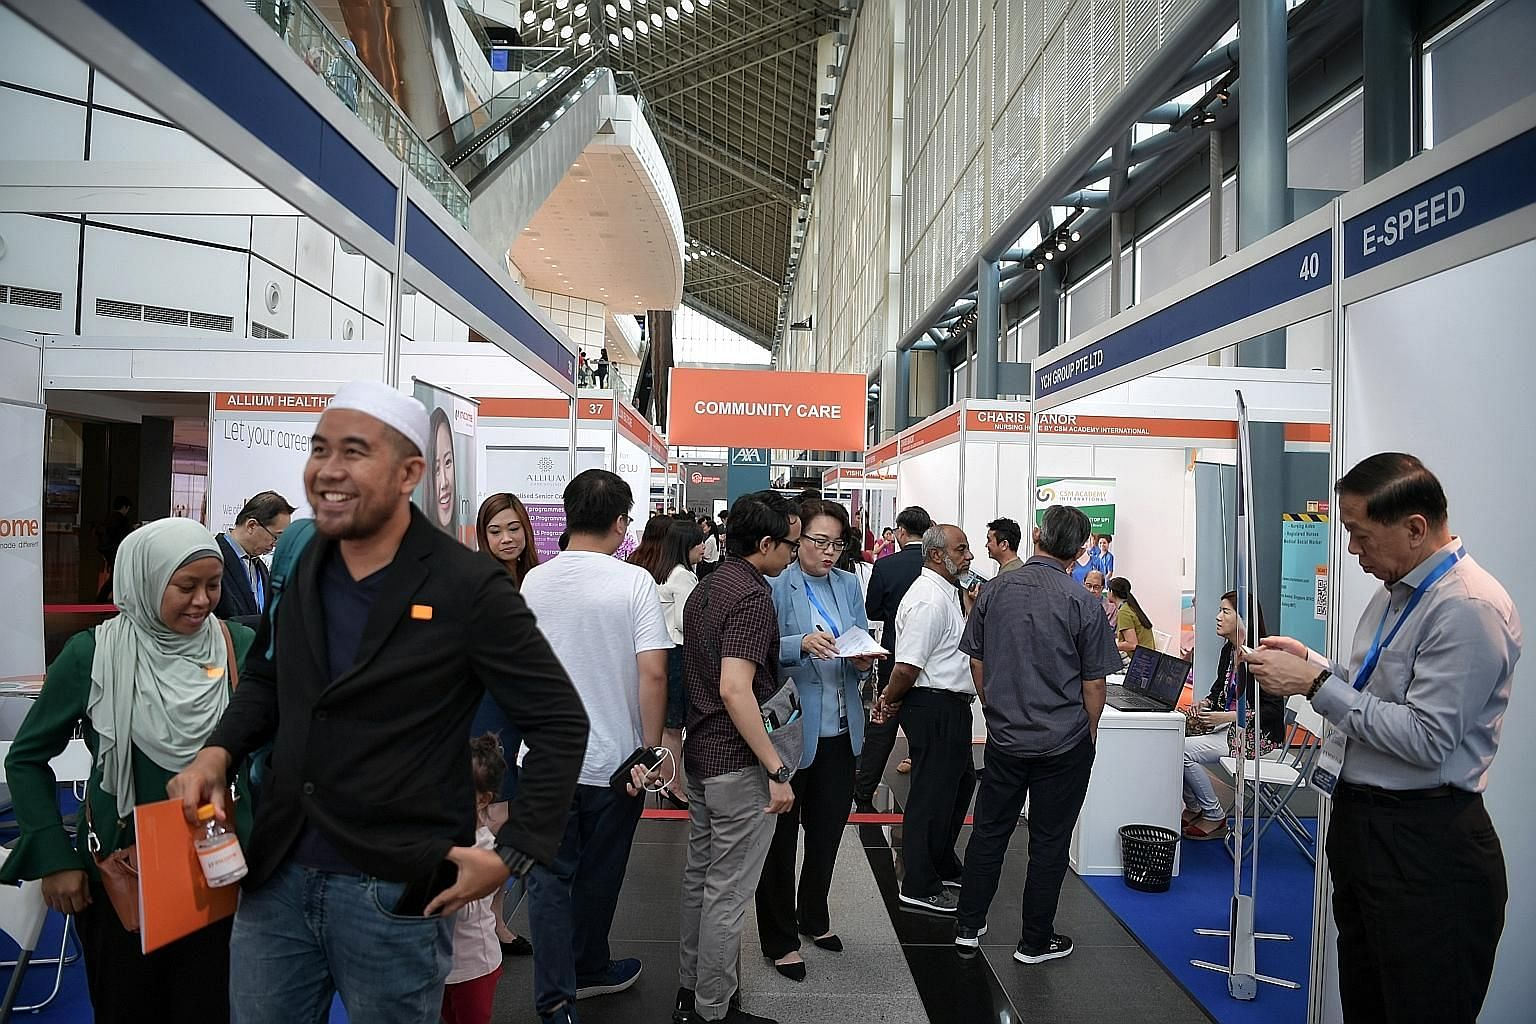 The STJobs Career and Learning Fair held earlier this month. A new survey found that job seekers here expect an average pay rise of 22.4 per cent when changing roles. But Generation Z job seekers - those aged 18 to 23 - were willing to trade salary a